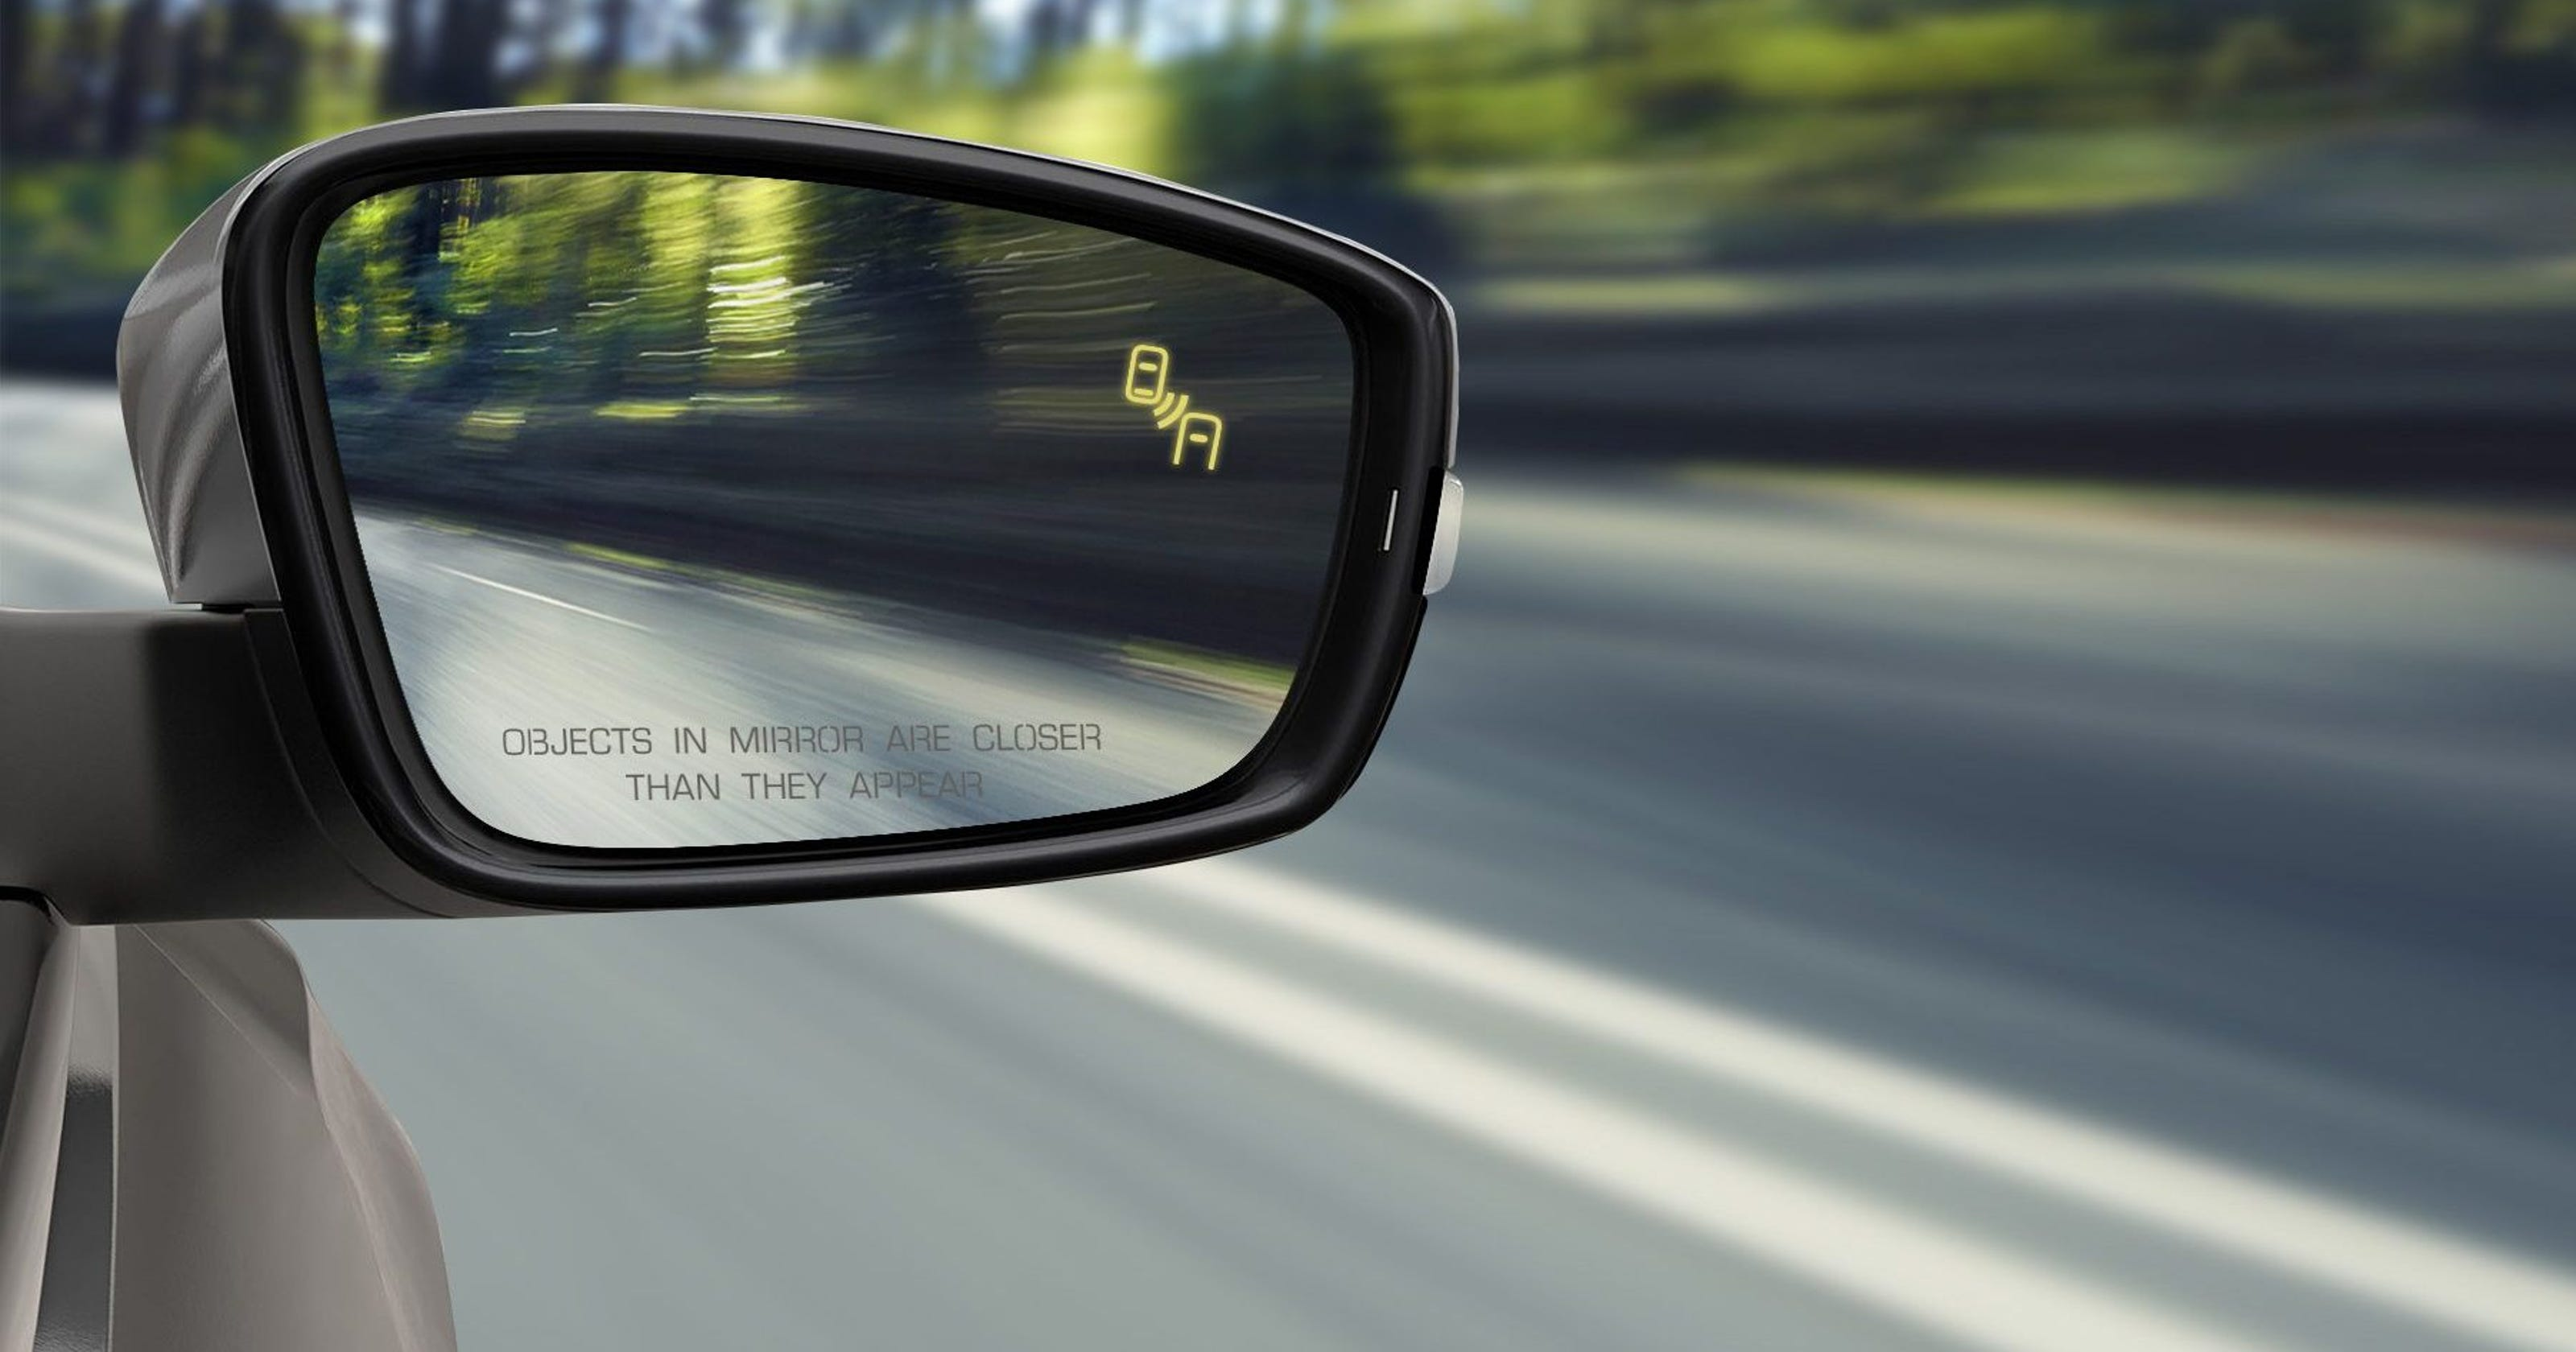 Iihs Auto Safety Study Lane Departure Blind Spot Warning